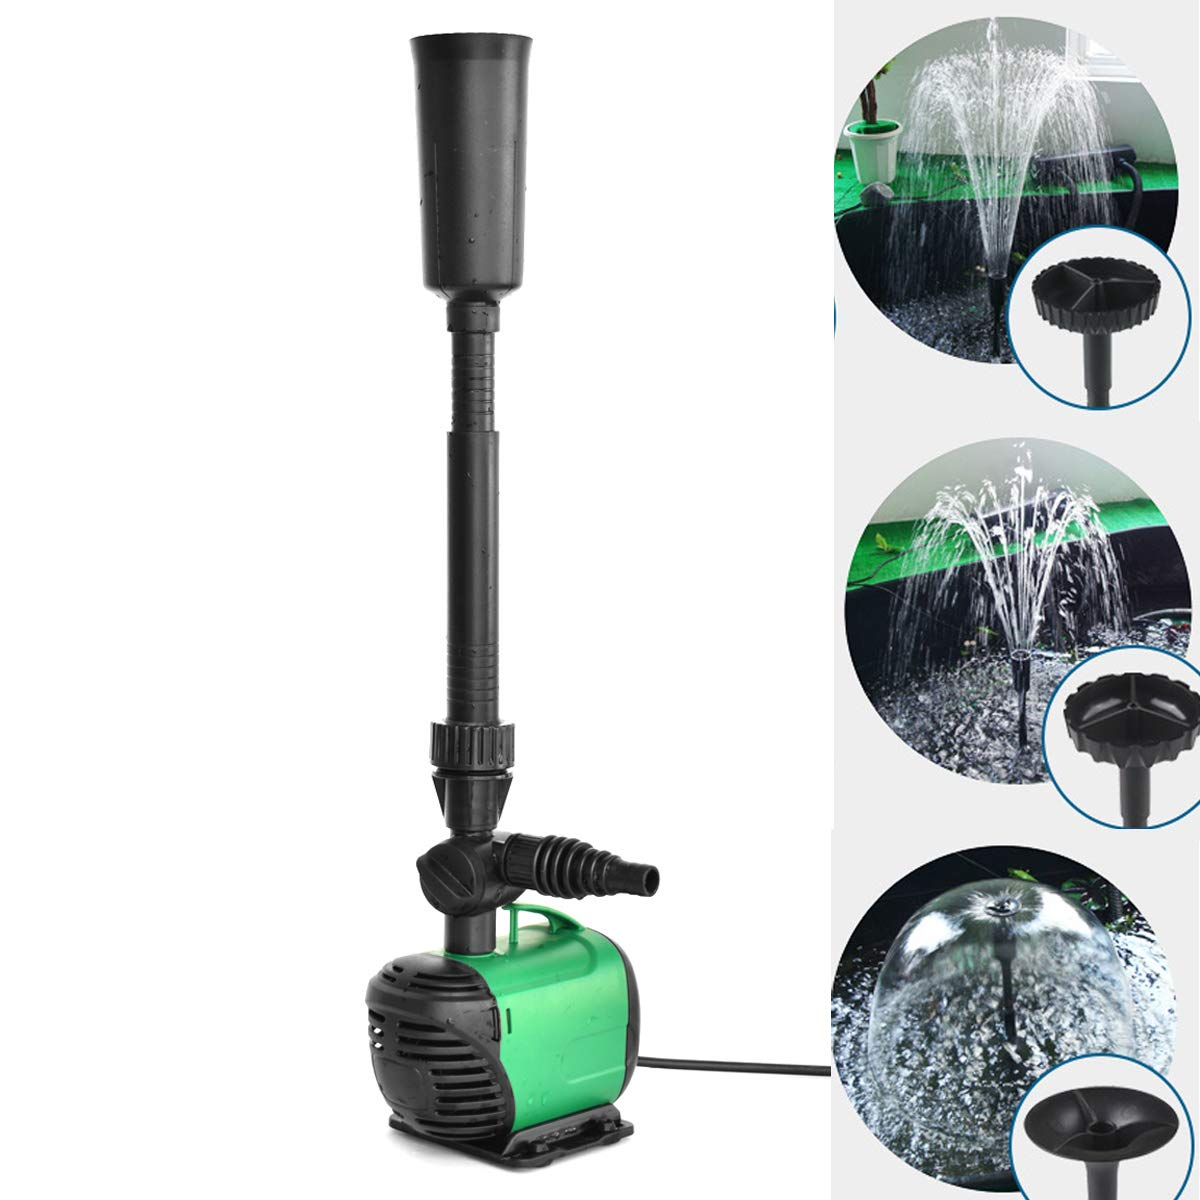 COODIA 370GPH (1400L/H, 110V/24W) Submersible Pump Pond Fountain Multiple Water Fountain Spray Nozzles Kit for Garden PondIndoor and Outdoor Landscape